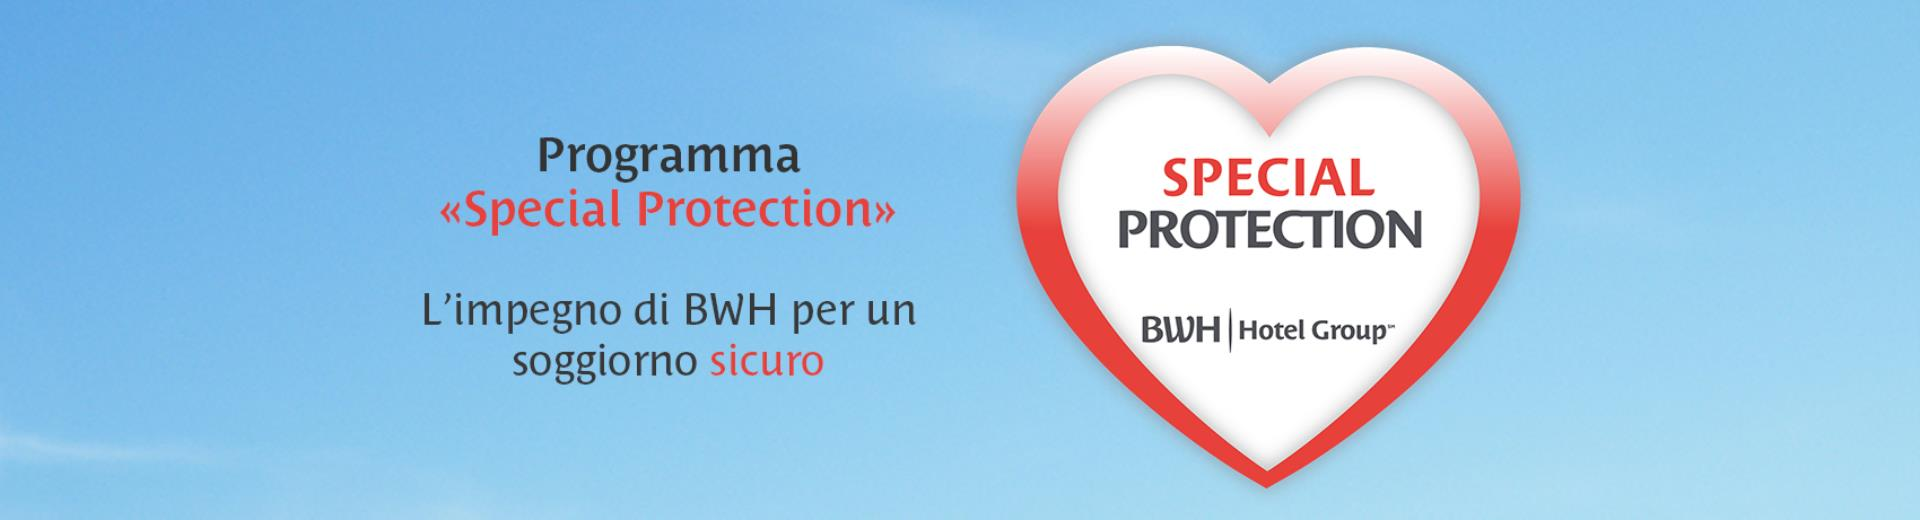 Special Protection - Tower Hotel Bologna